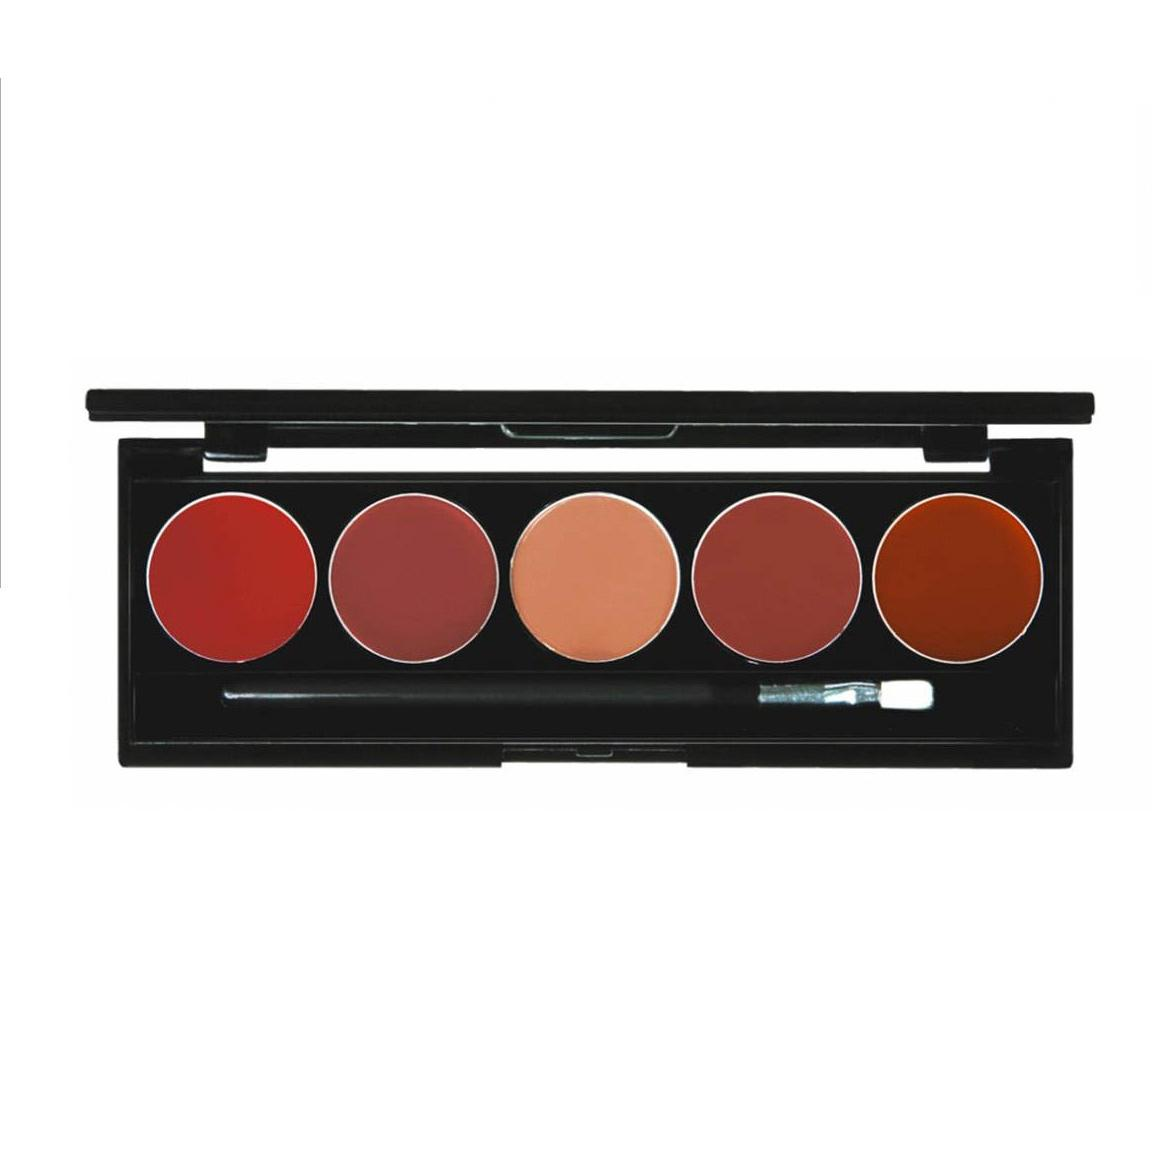 Make Over Lip Color Palette Elevenia Kripik Buah Mangga By Tki Shop Ui